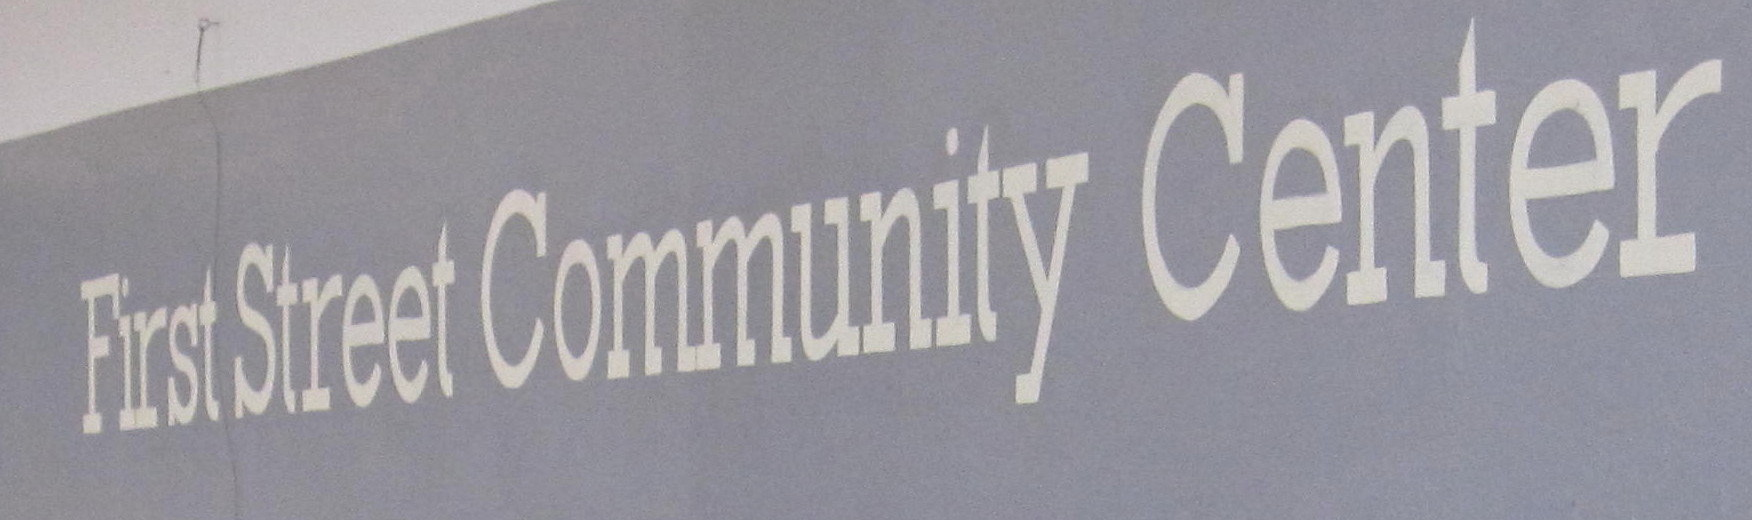 First Street Community Center FSCC Name in Gym